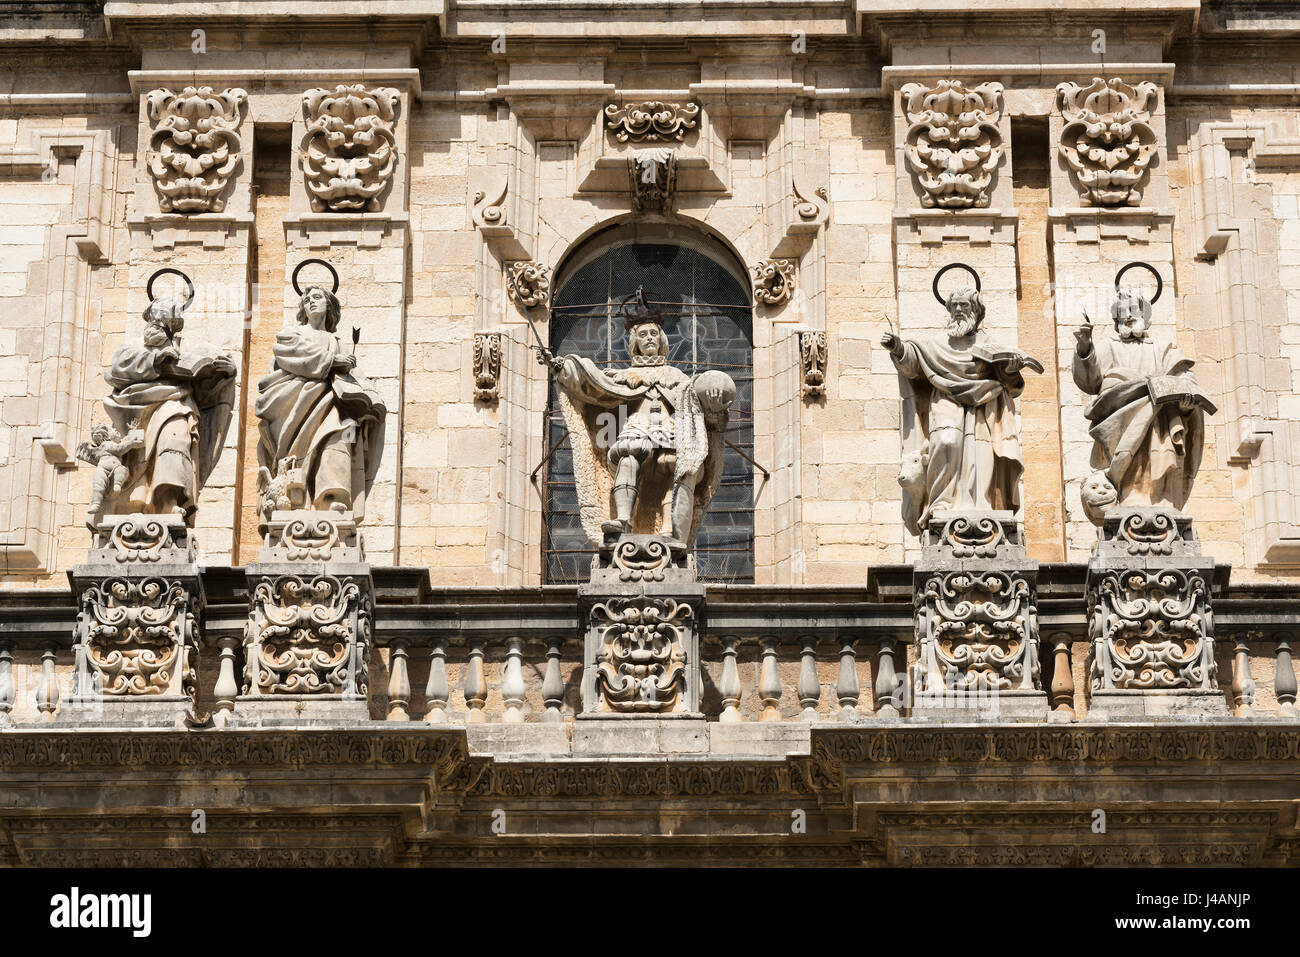 Jaen (Andalucia, Spain): the medieval cathedral, built from 13th to 18th century, in Baroque style. Facade - Stock Image